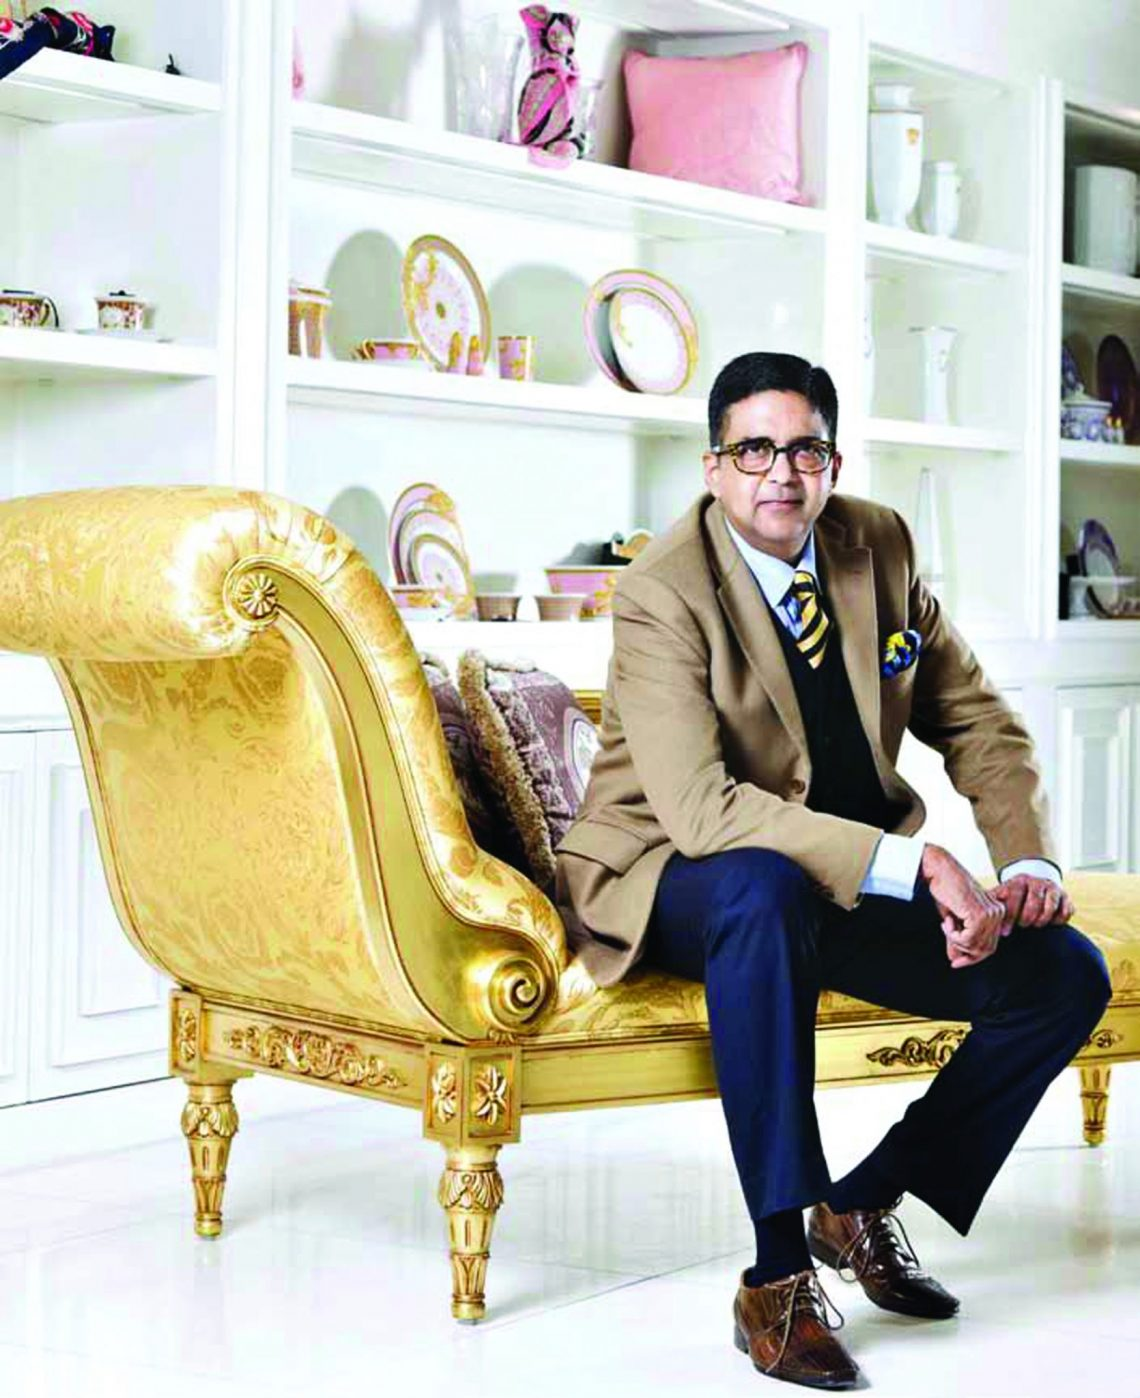 abhay sir 1 Meet our Luxury Awards Judges: Abhay Gupta, CEO of Luxury Connect & Luxury Connect Business School EAT LOVE SAVOR International luxury lifestyle magazine and bookazines